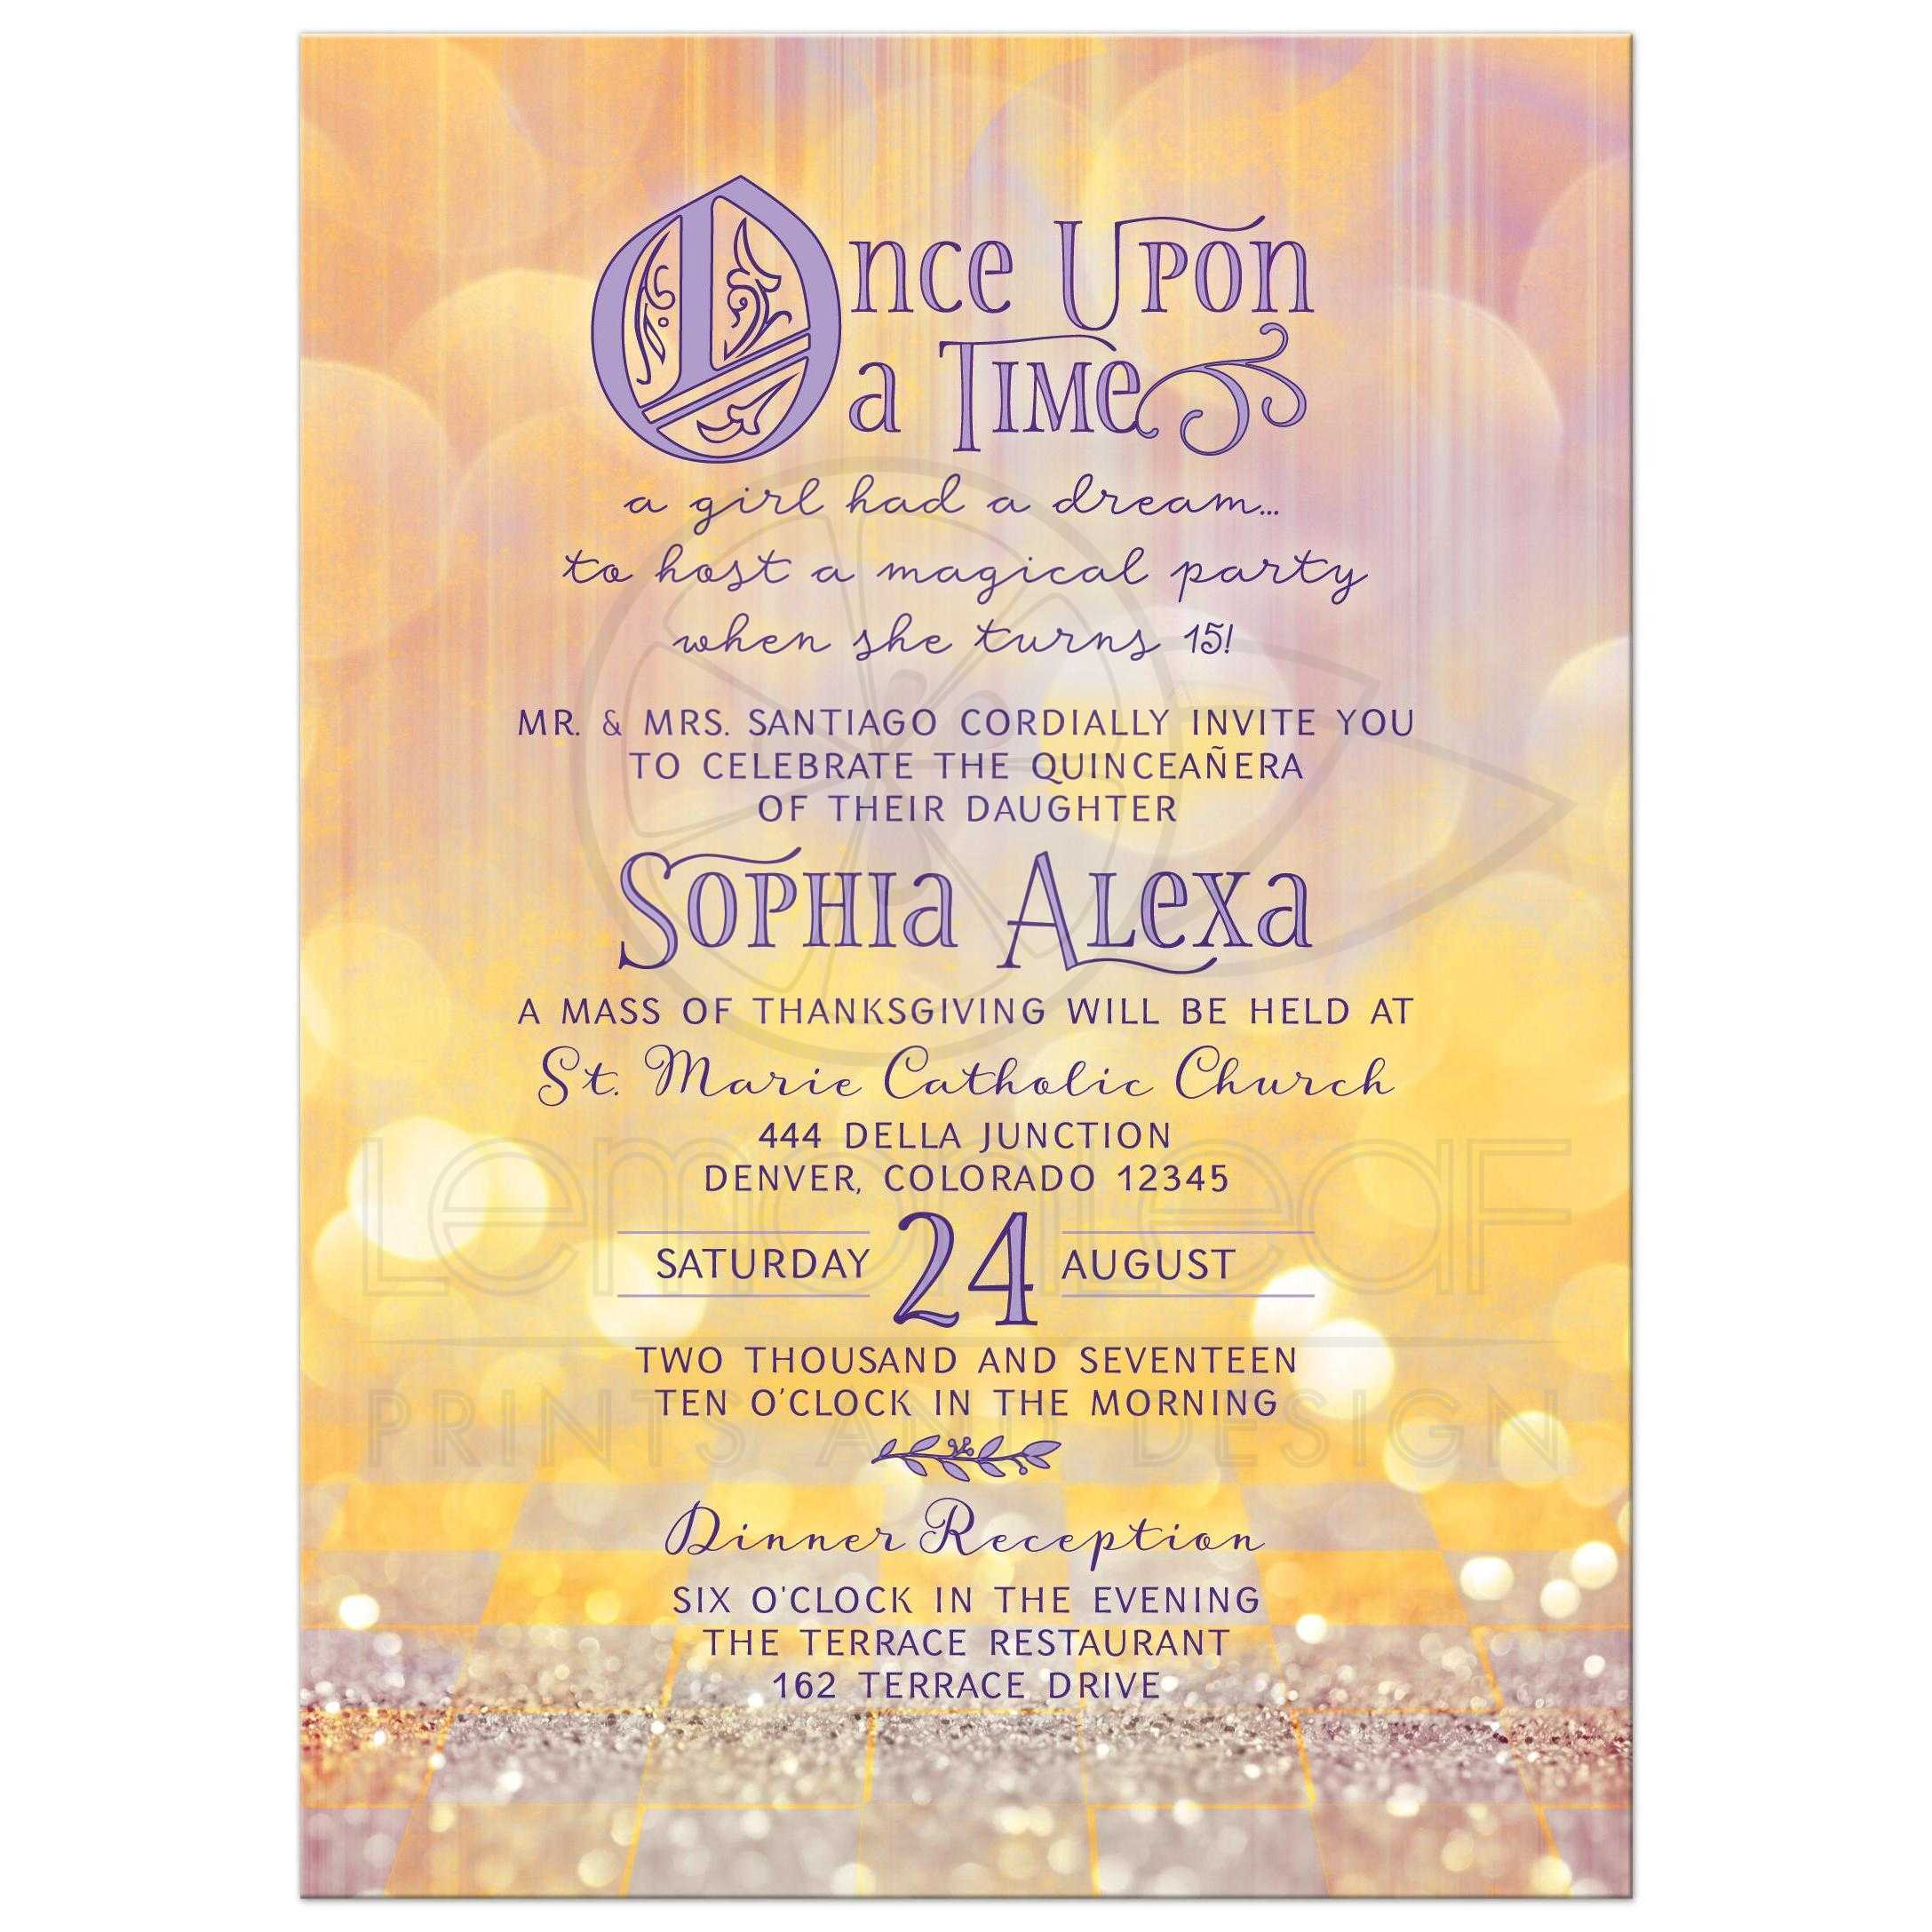 Quinceañera Invitation | Magical Ballroom Once Upon a Time